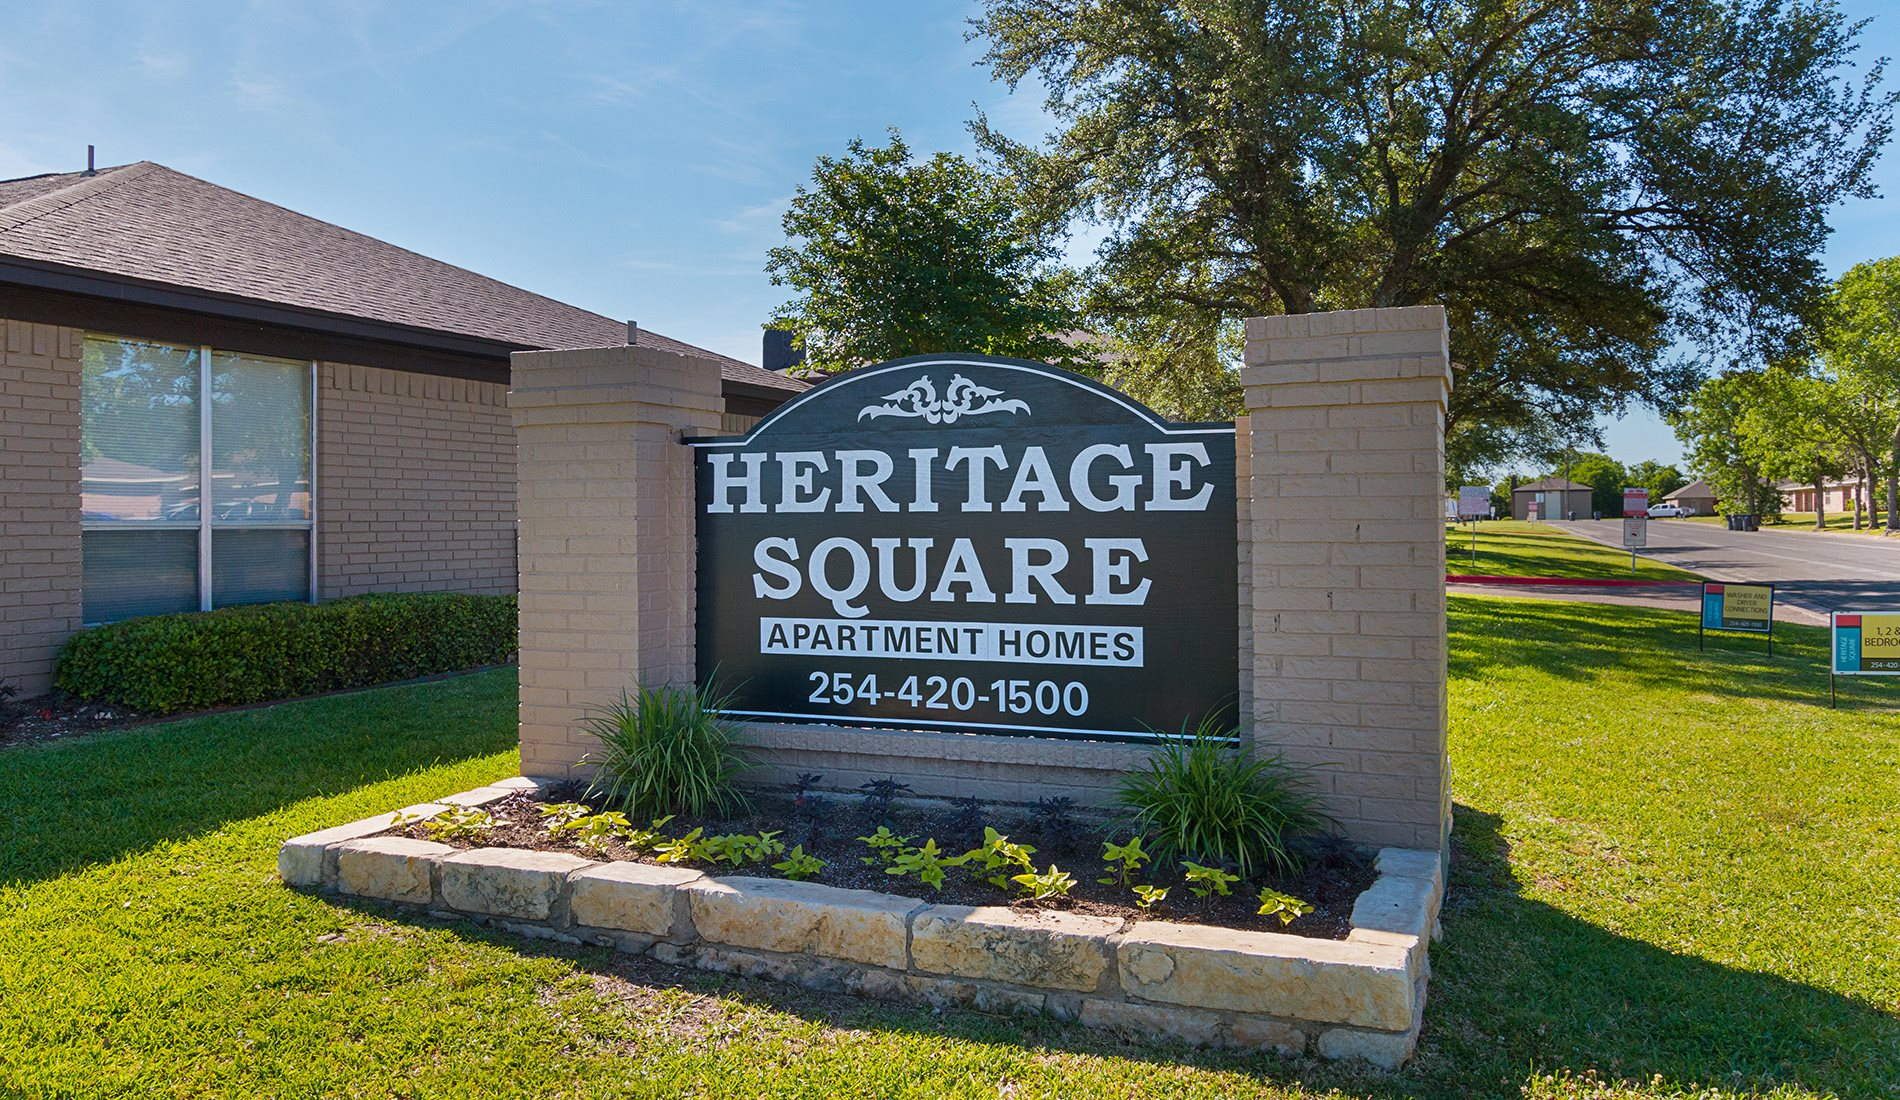 Main Signage at Heritage Square Apartment Homes, Waco, Texas, TX